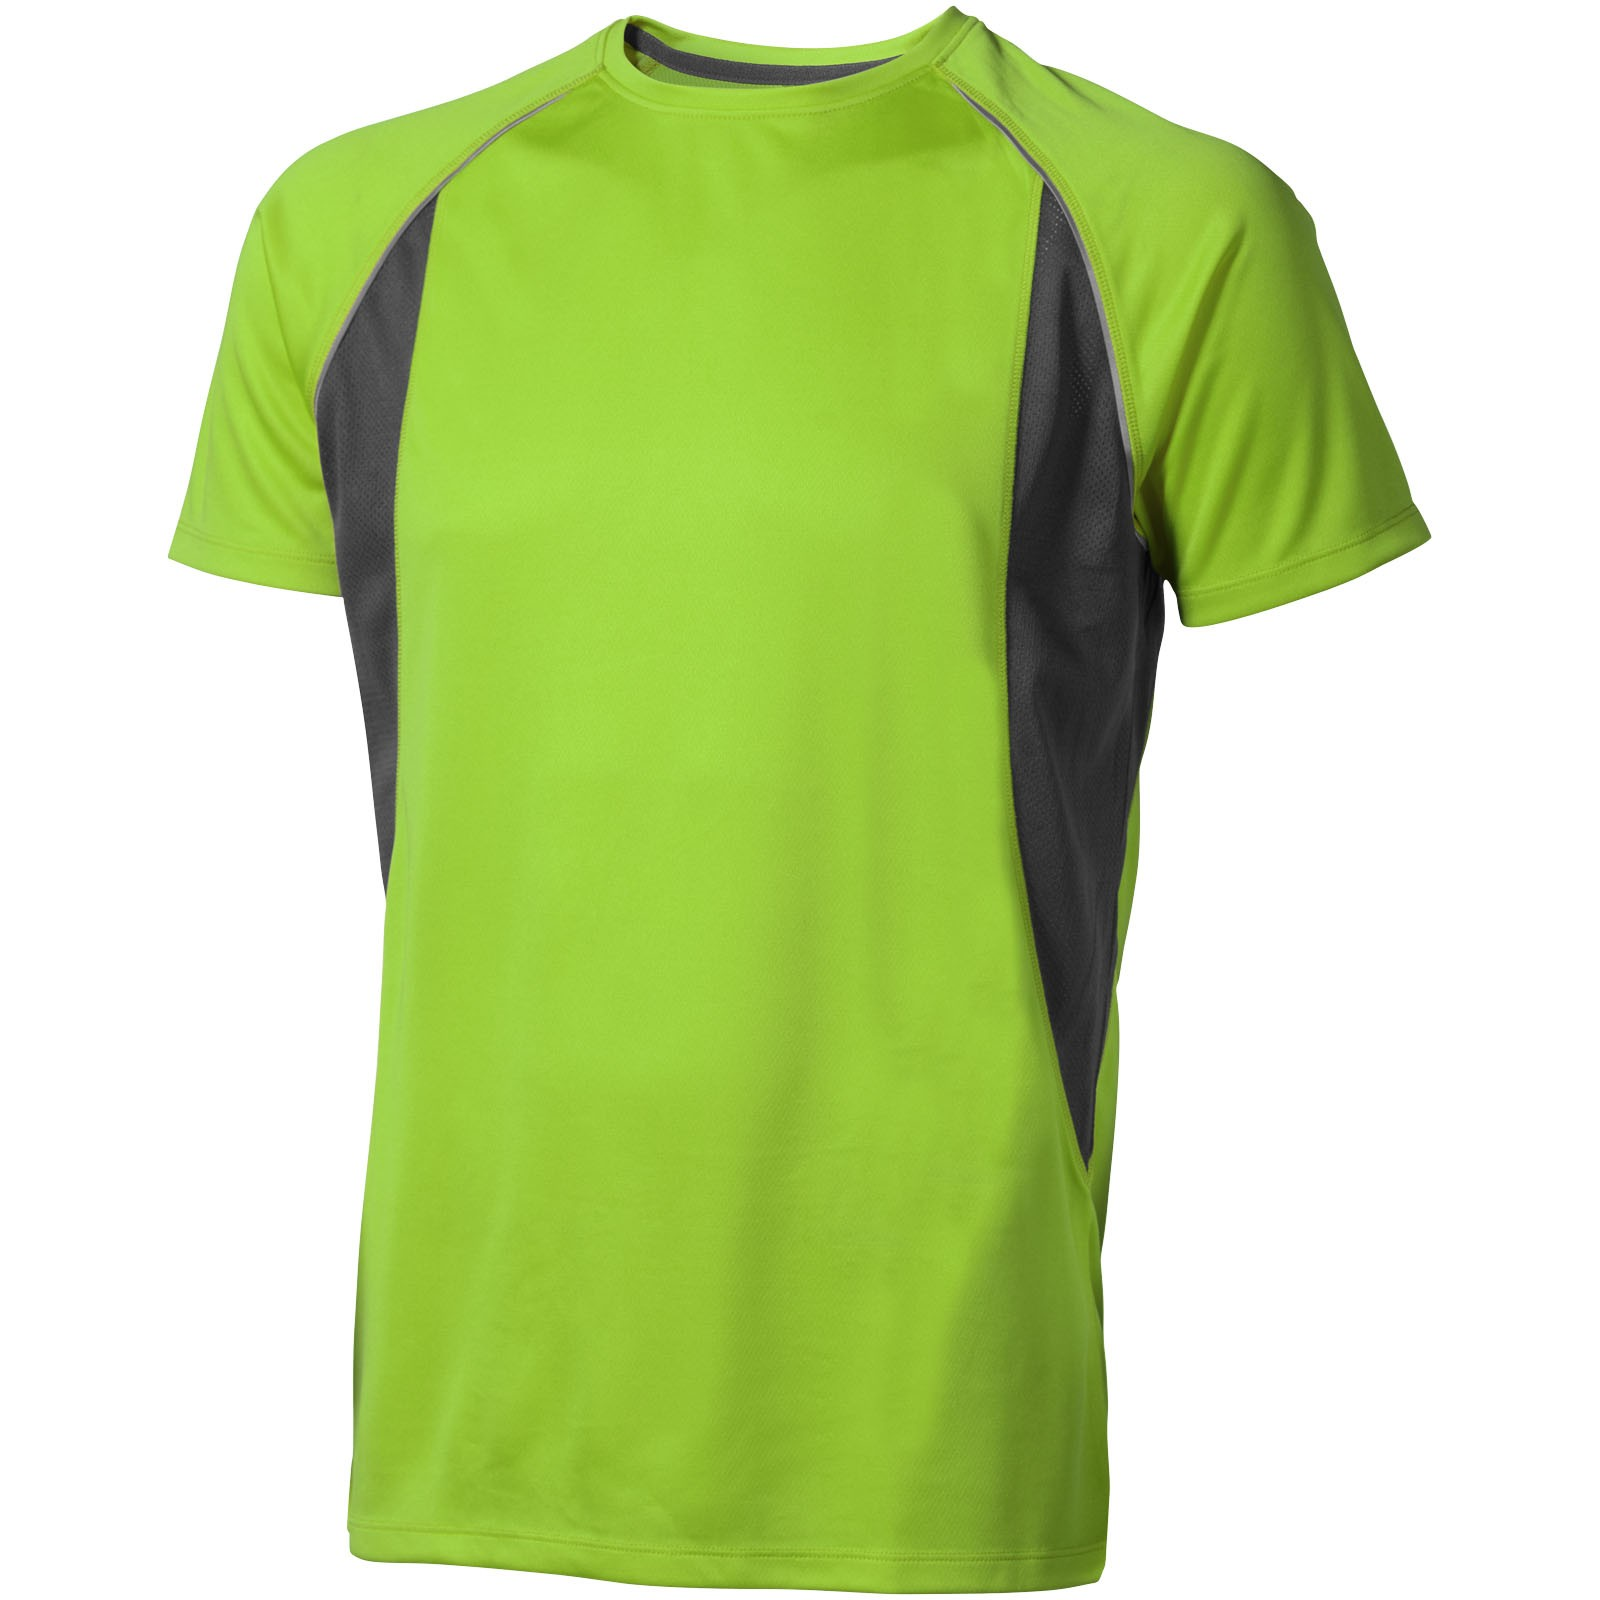 Quebec short sleeve men's cool fit t-shirt - Apple green / Anthracite / S